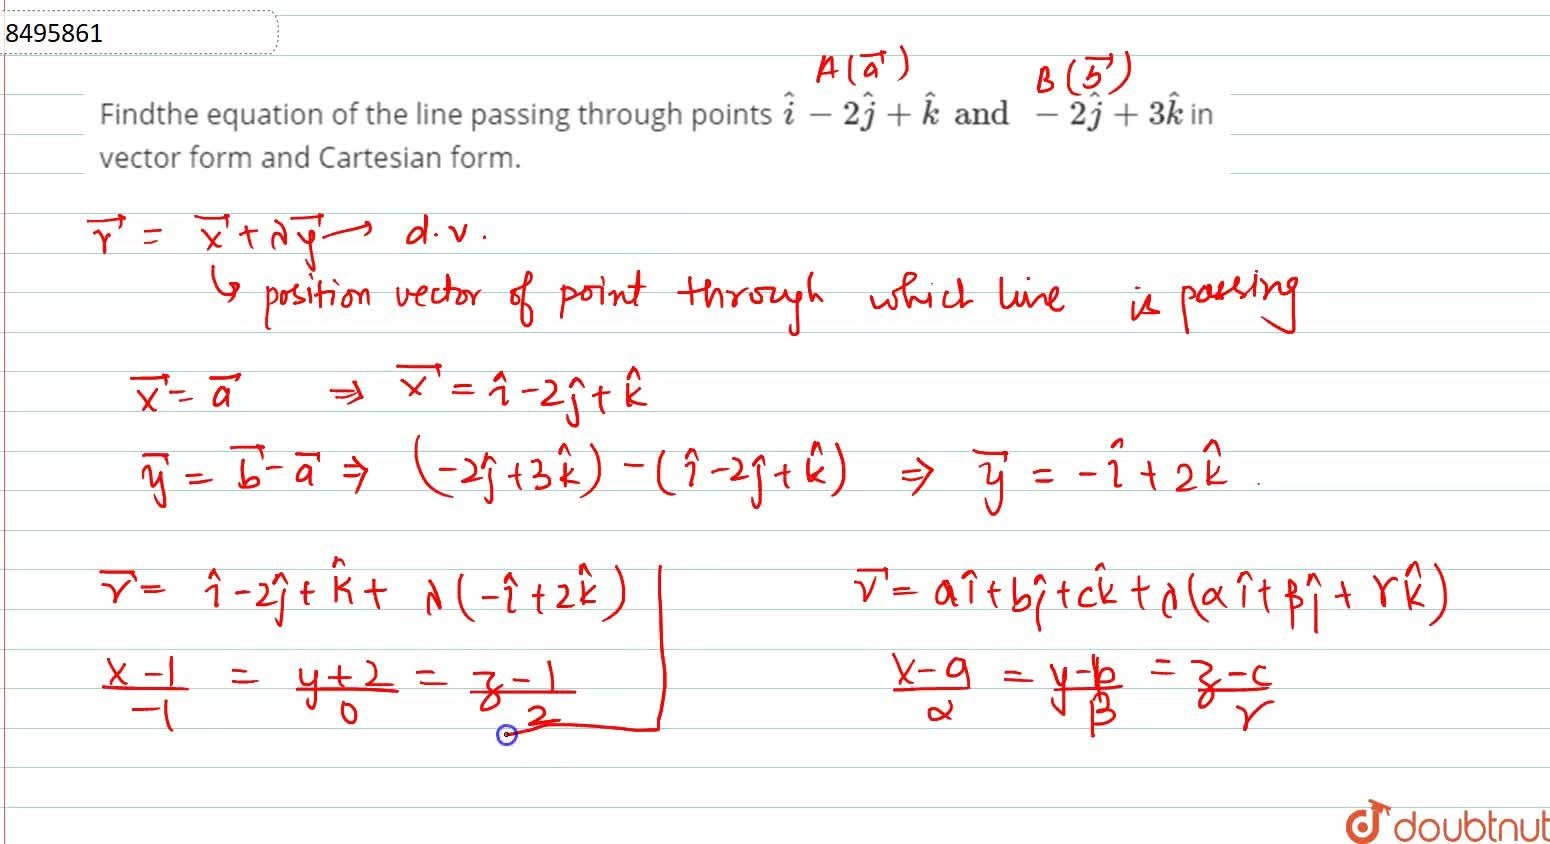 Findthe equation of the line passing through points hati-2hatj+hatk and -2hatj+3hatk in vector form and Cartesian form.